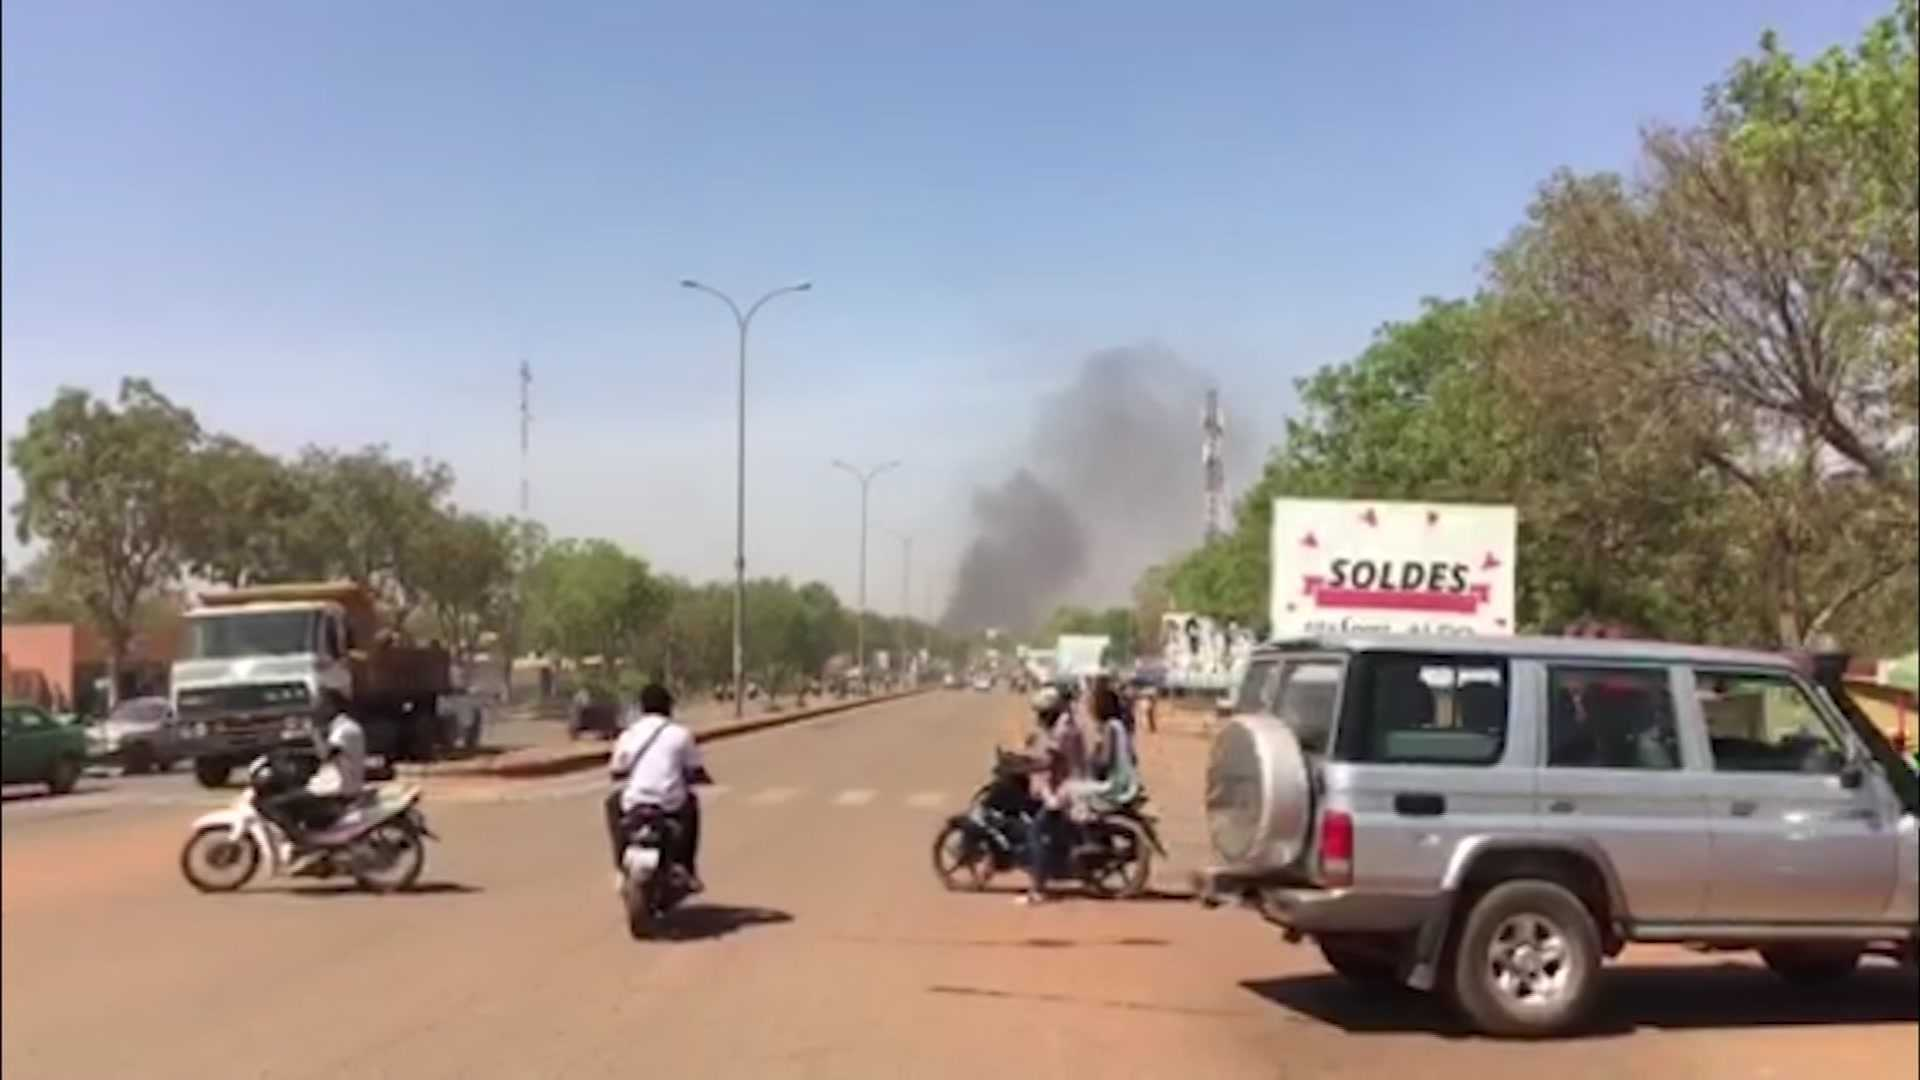 Extremists Among at Least 16 Killed in Attacks in Burkina Faso